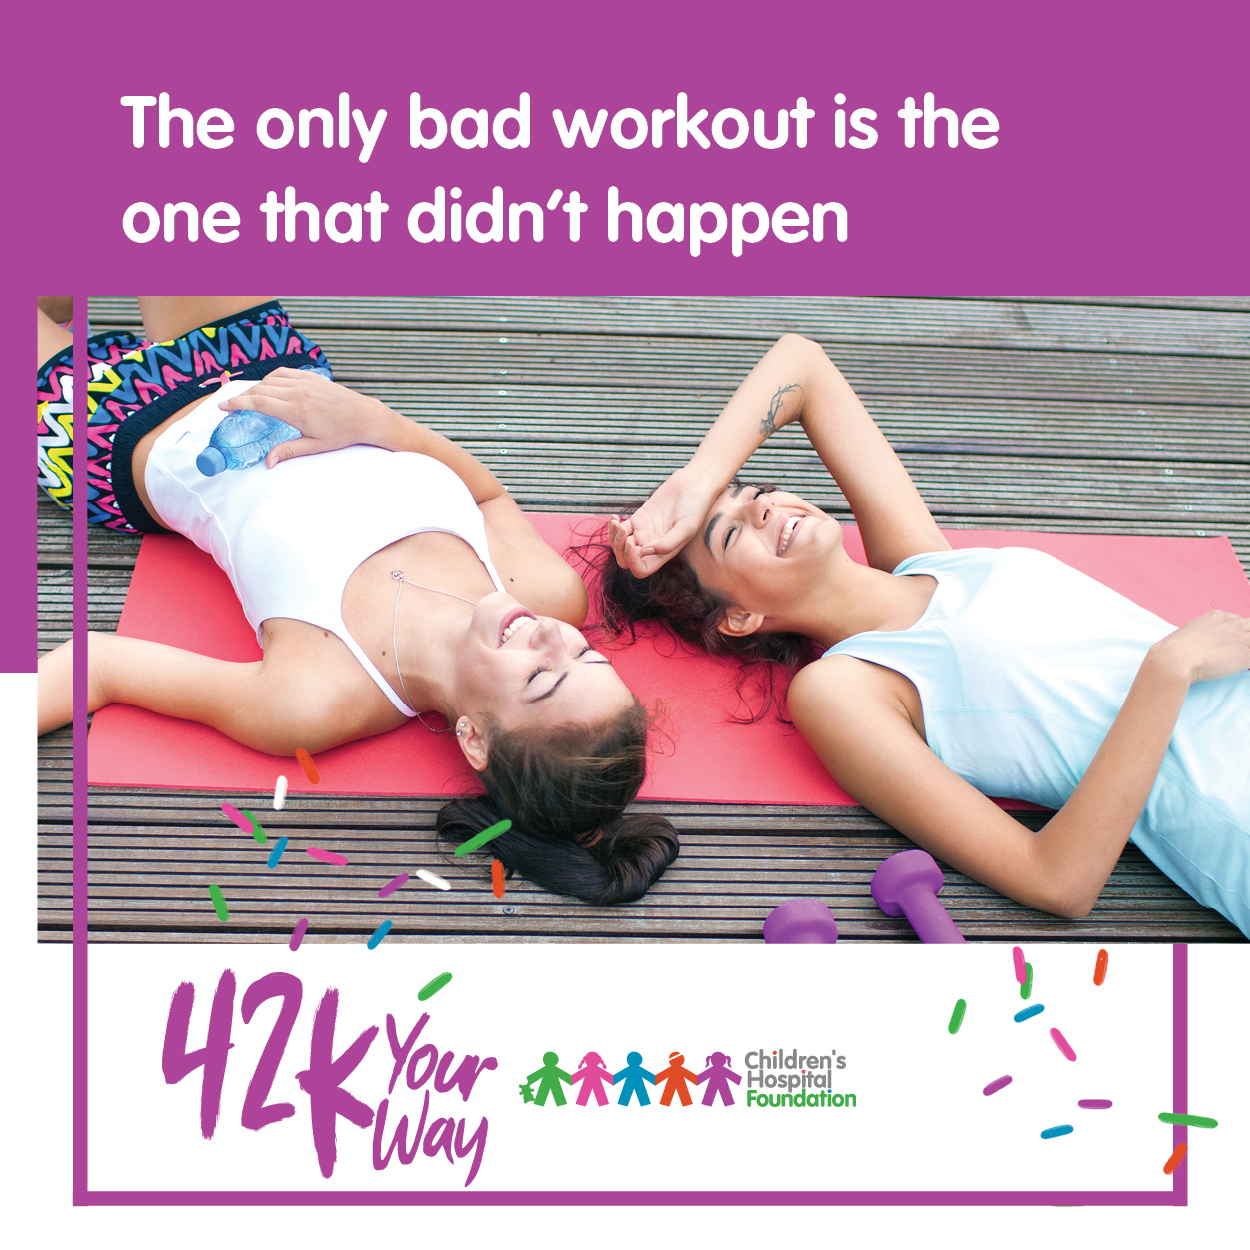 42k Your Way - The only bad workout